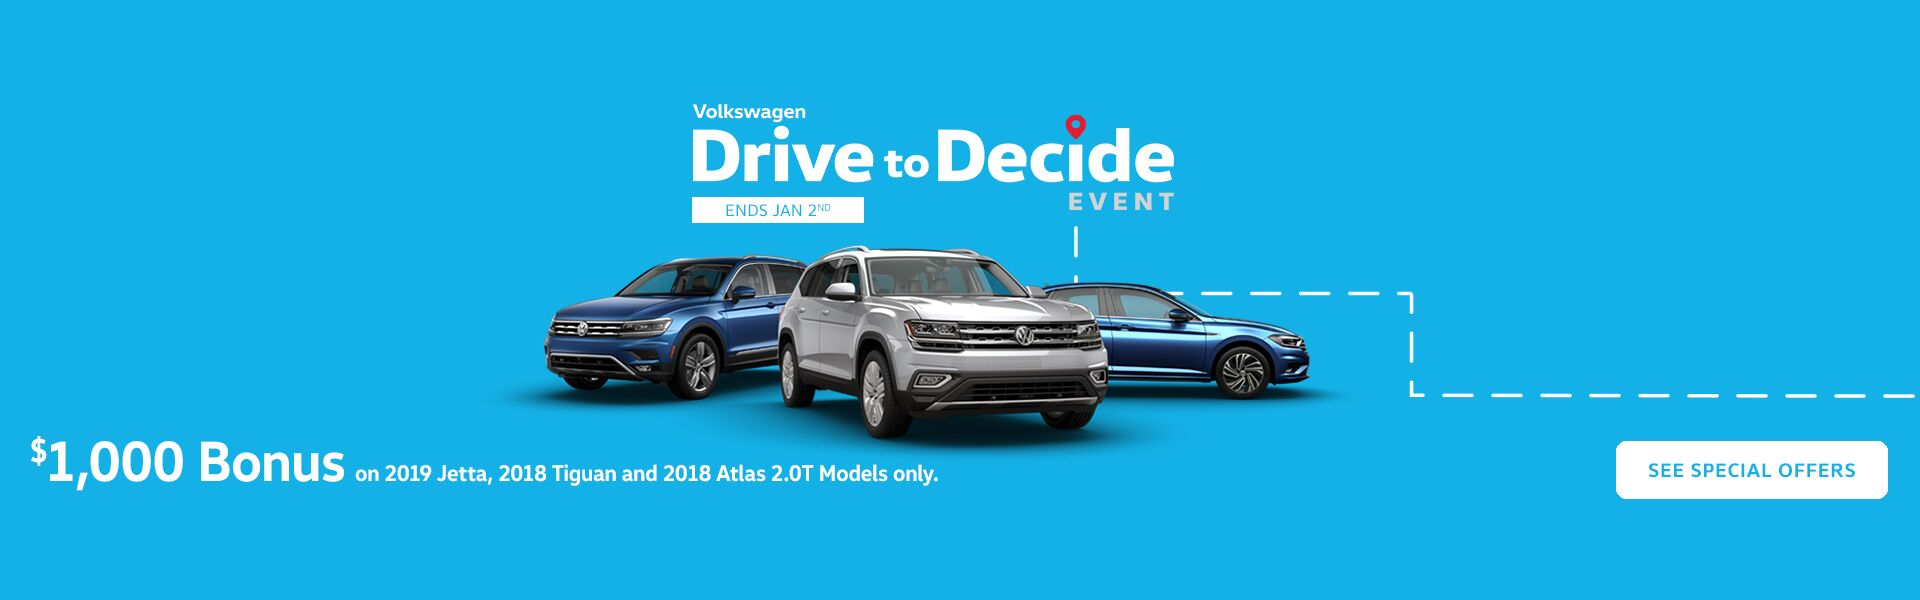 Drive to Decide Event